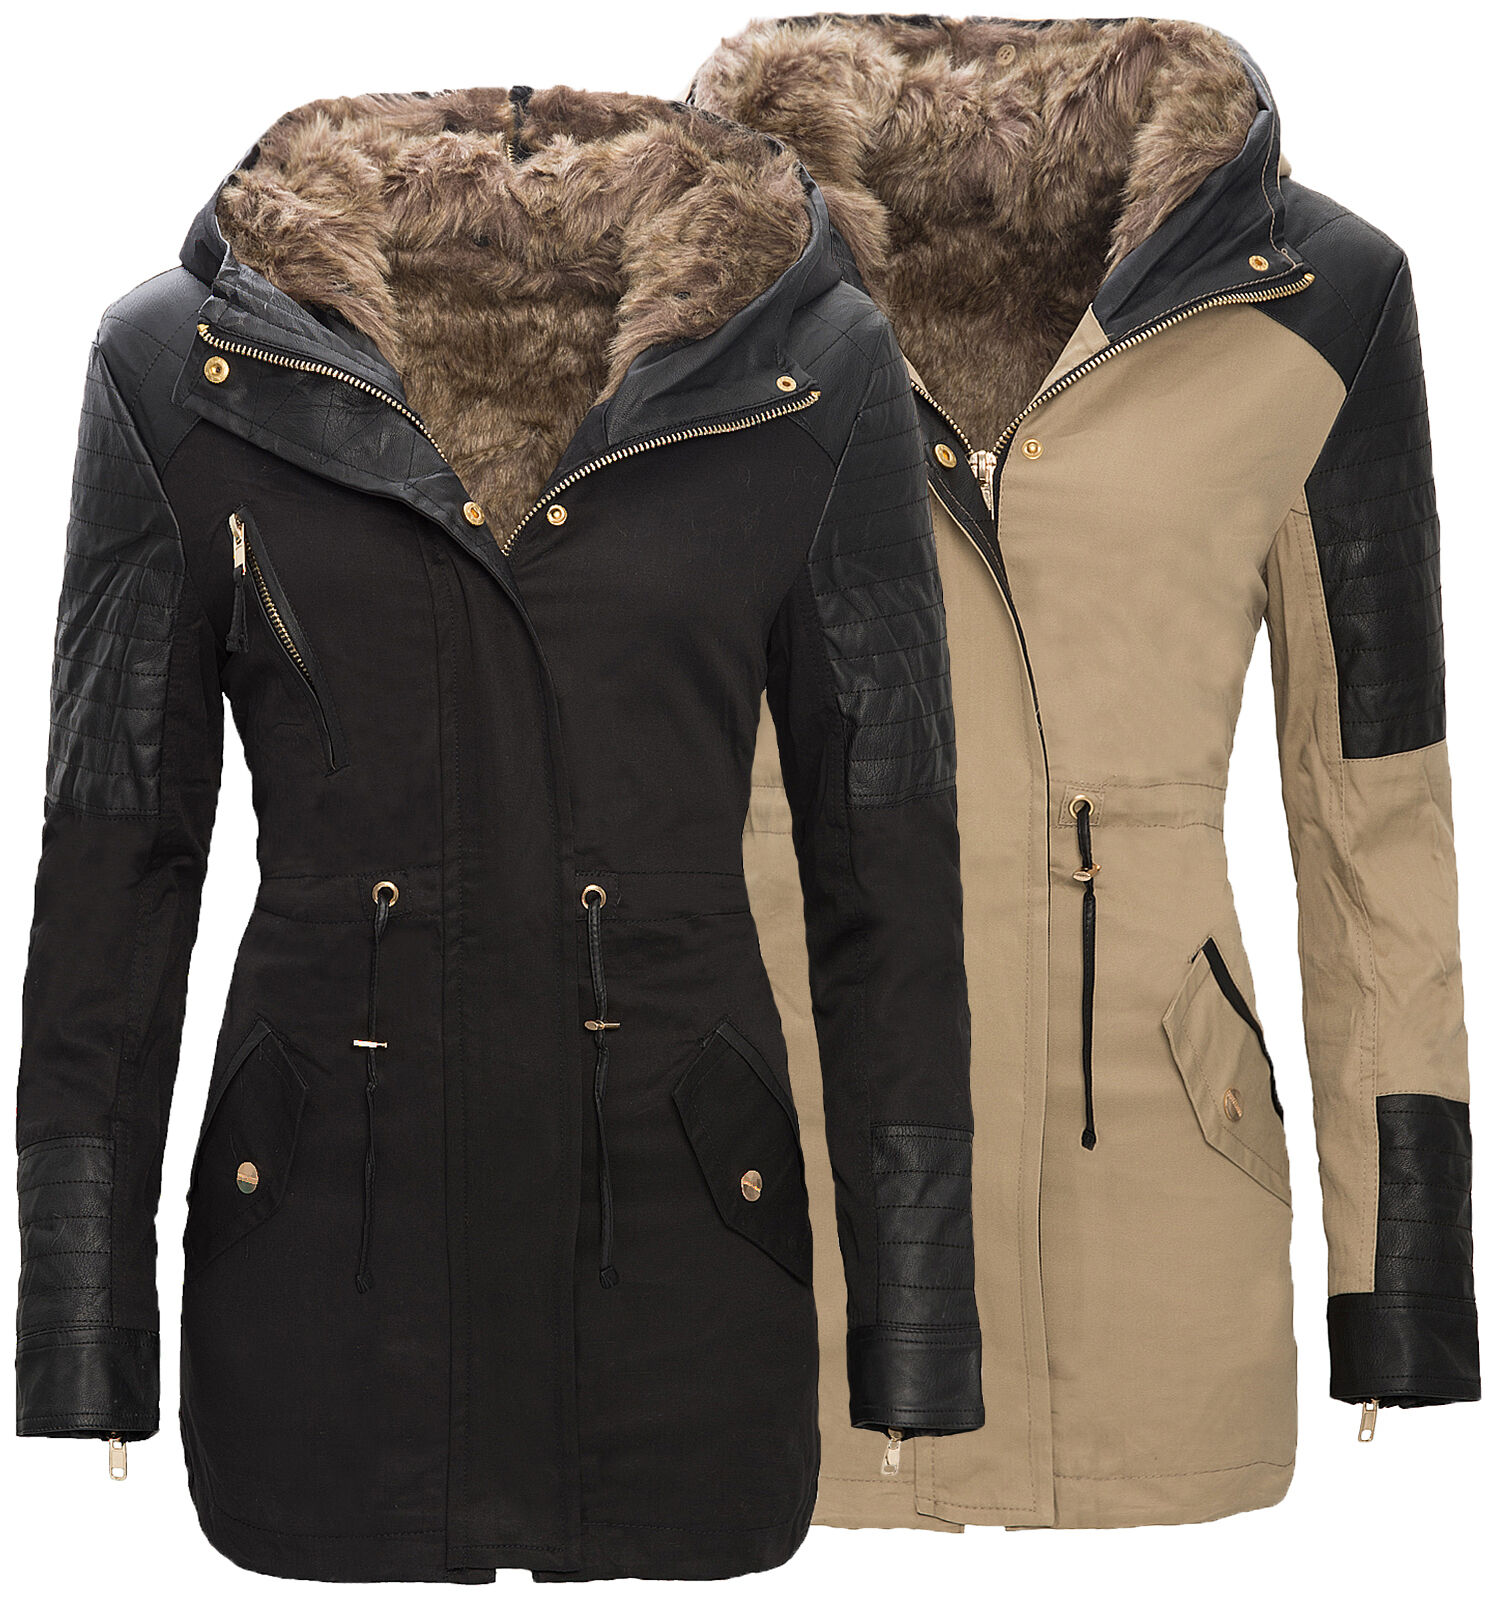 warme damen winter parka jacke langer mantel winterjacke fell kragen s xxl d 88 eur 69 90. Black Bedroom Furniture Sets. Home Design Ideas